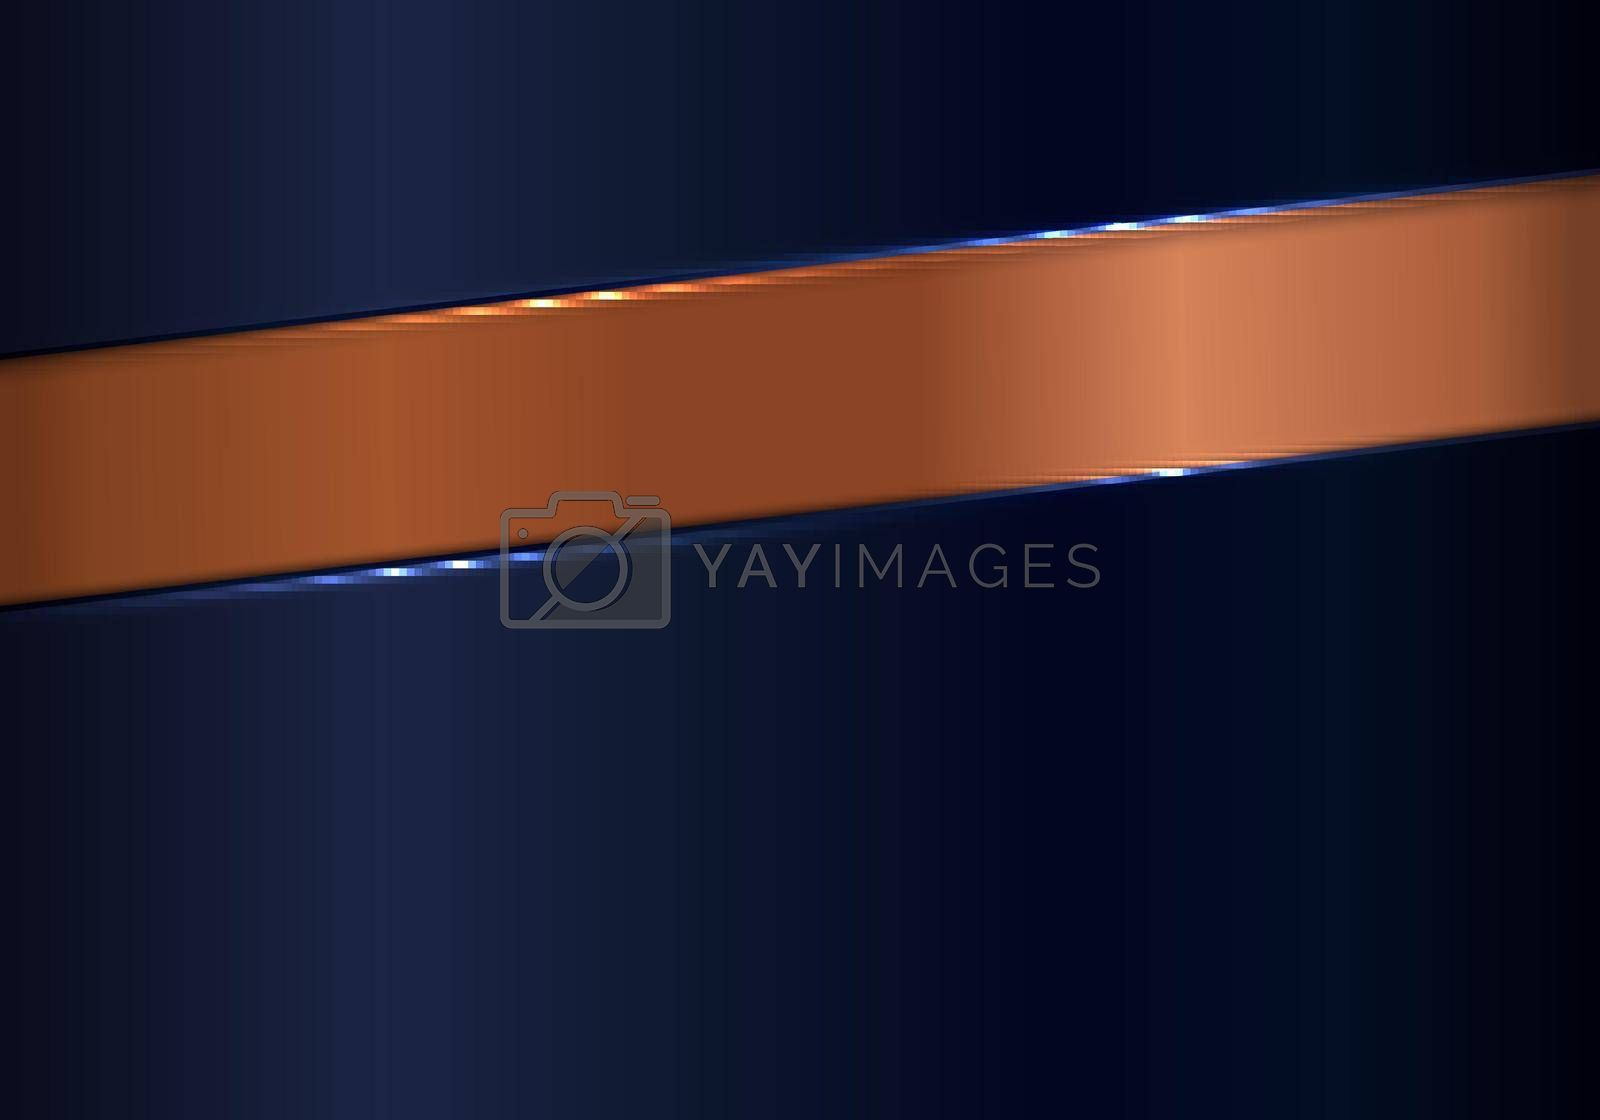 Royalty free image of Abstract shiny blue and copper metallic background and texture luxury style by phochi